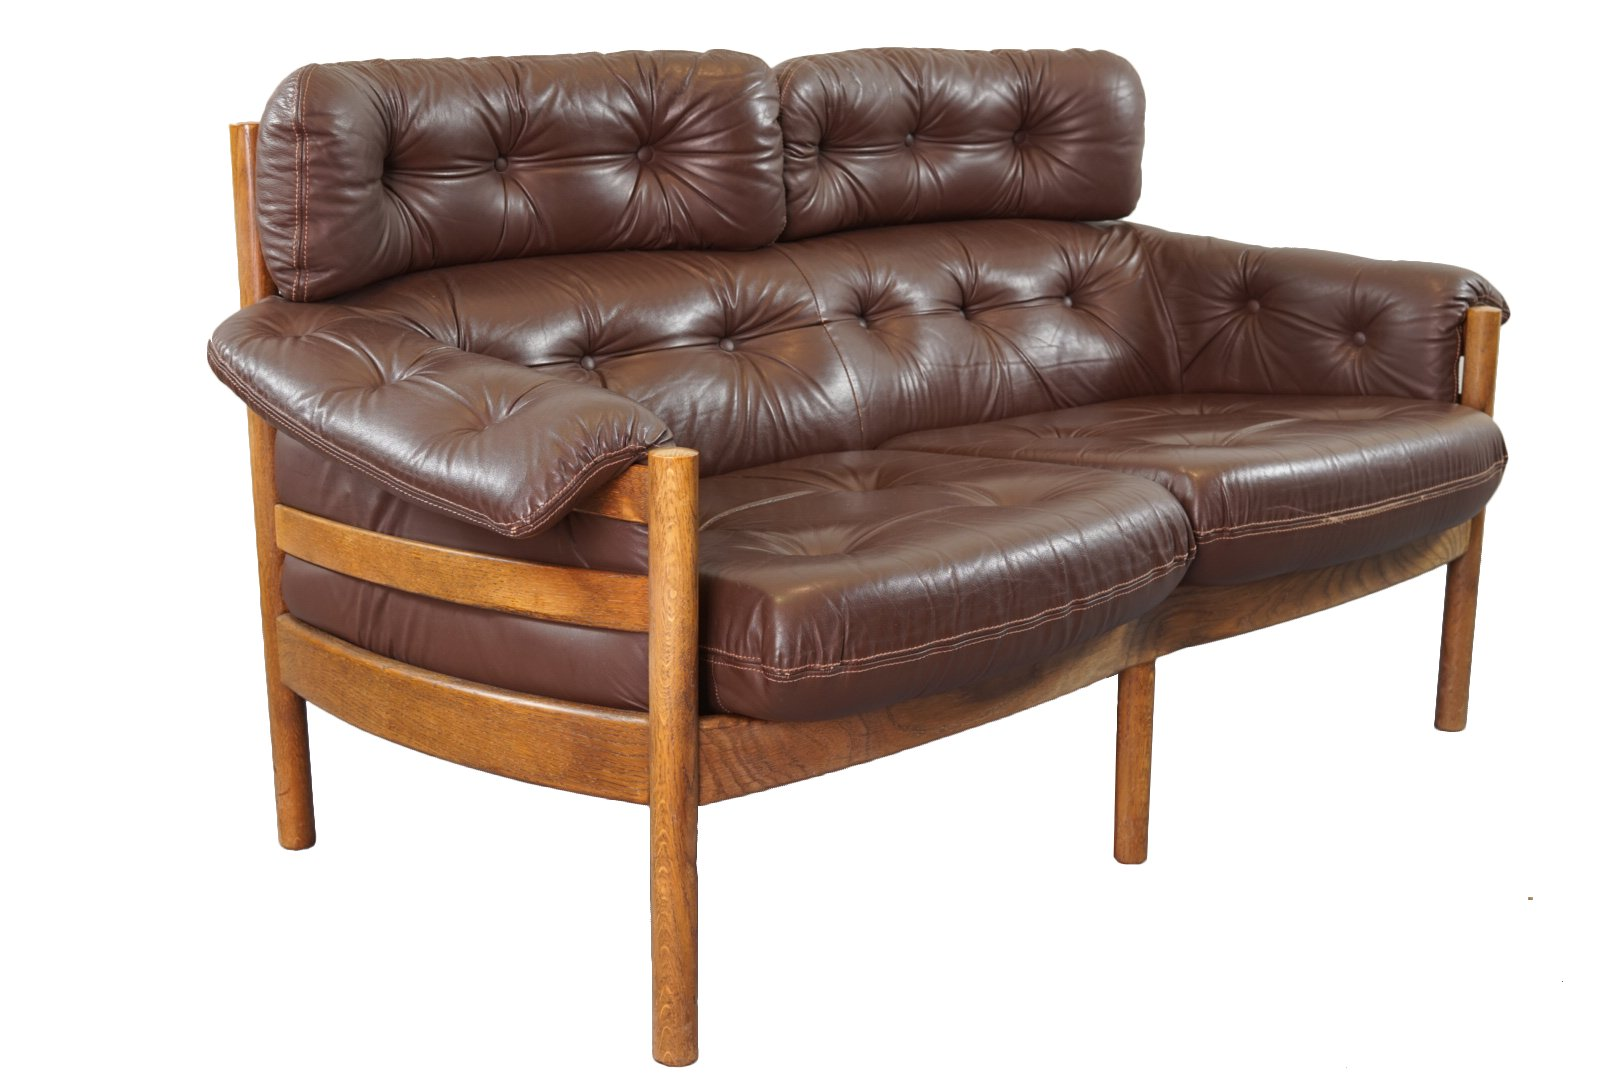 Vintage Tufted Leather Sofa By Arne Norell For Coja For